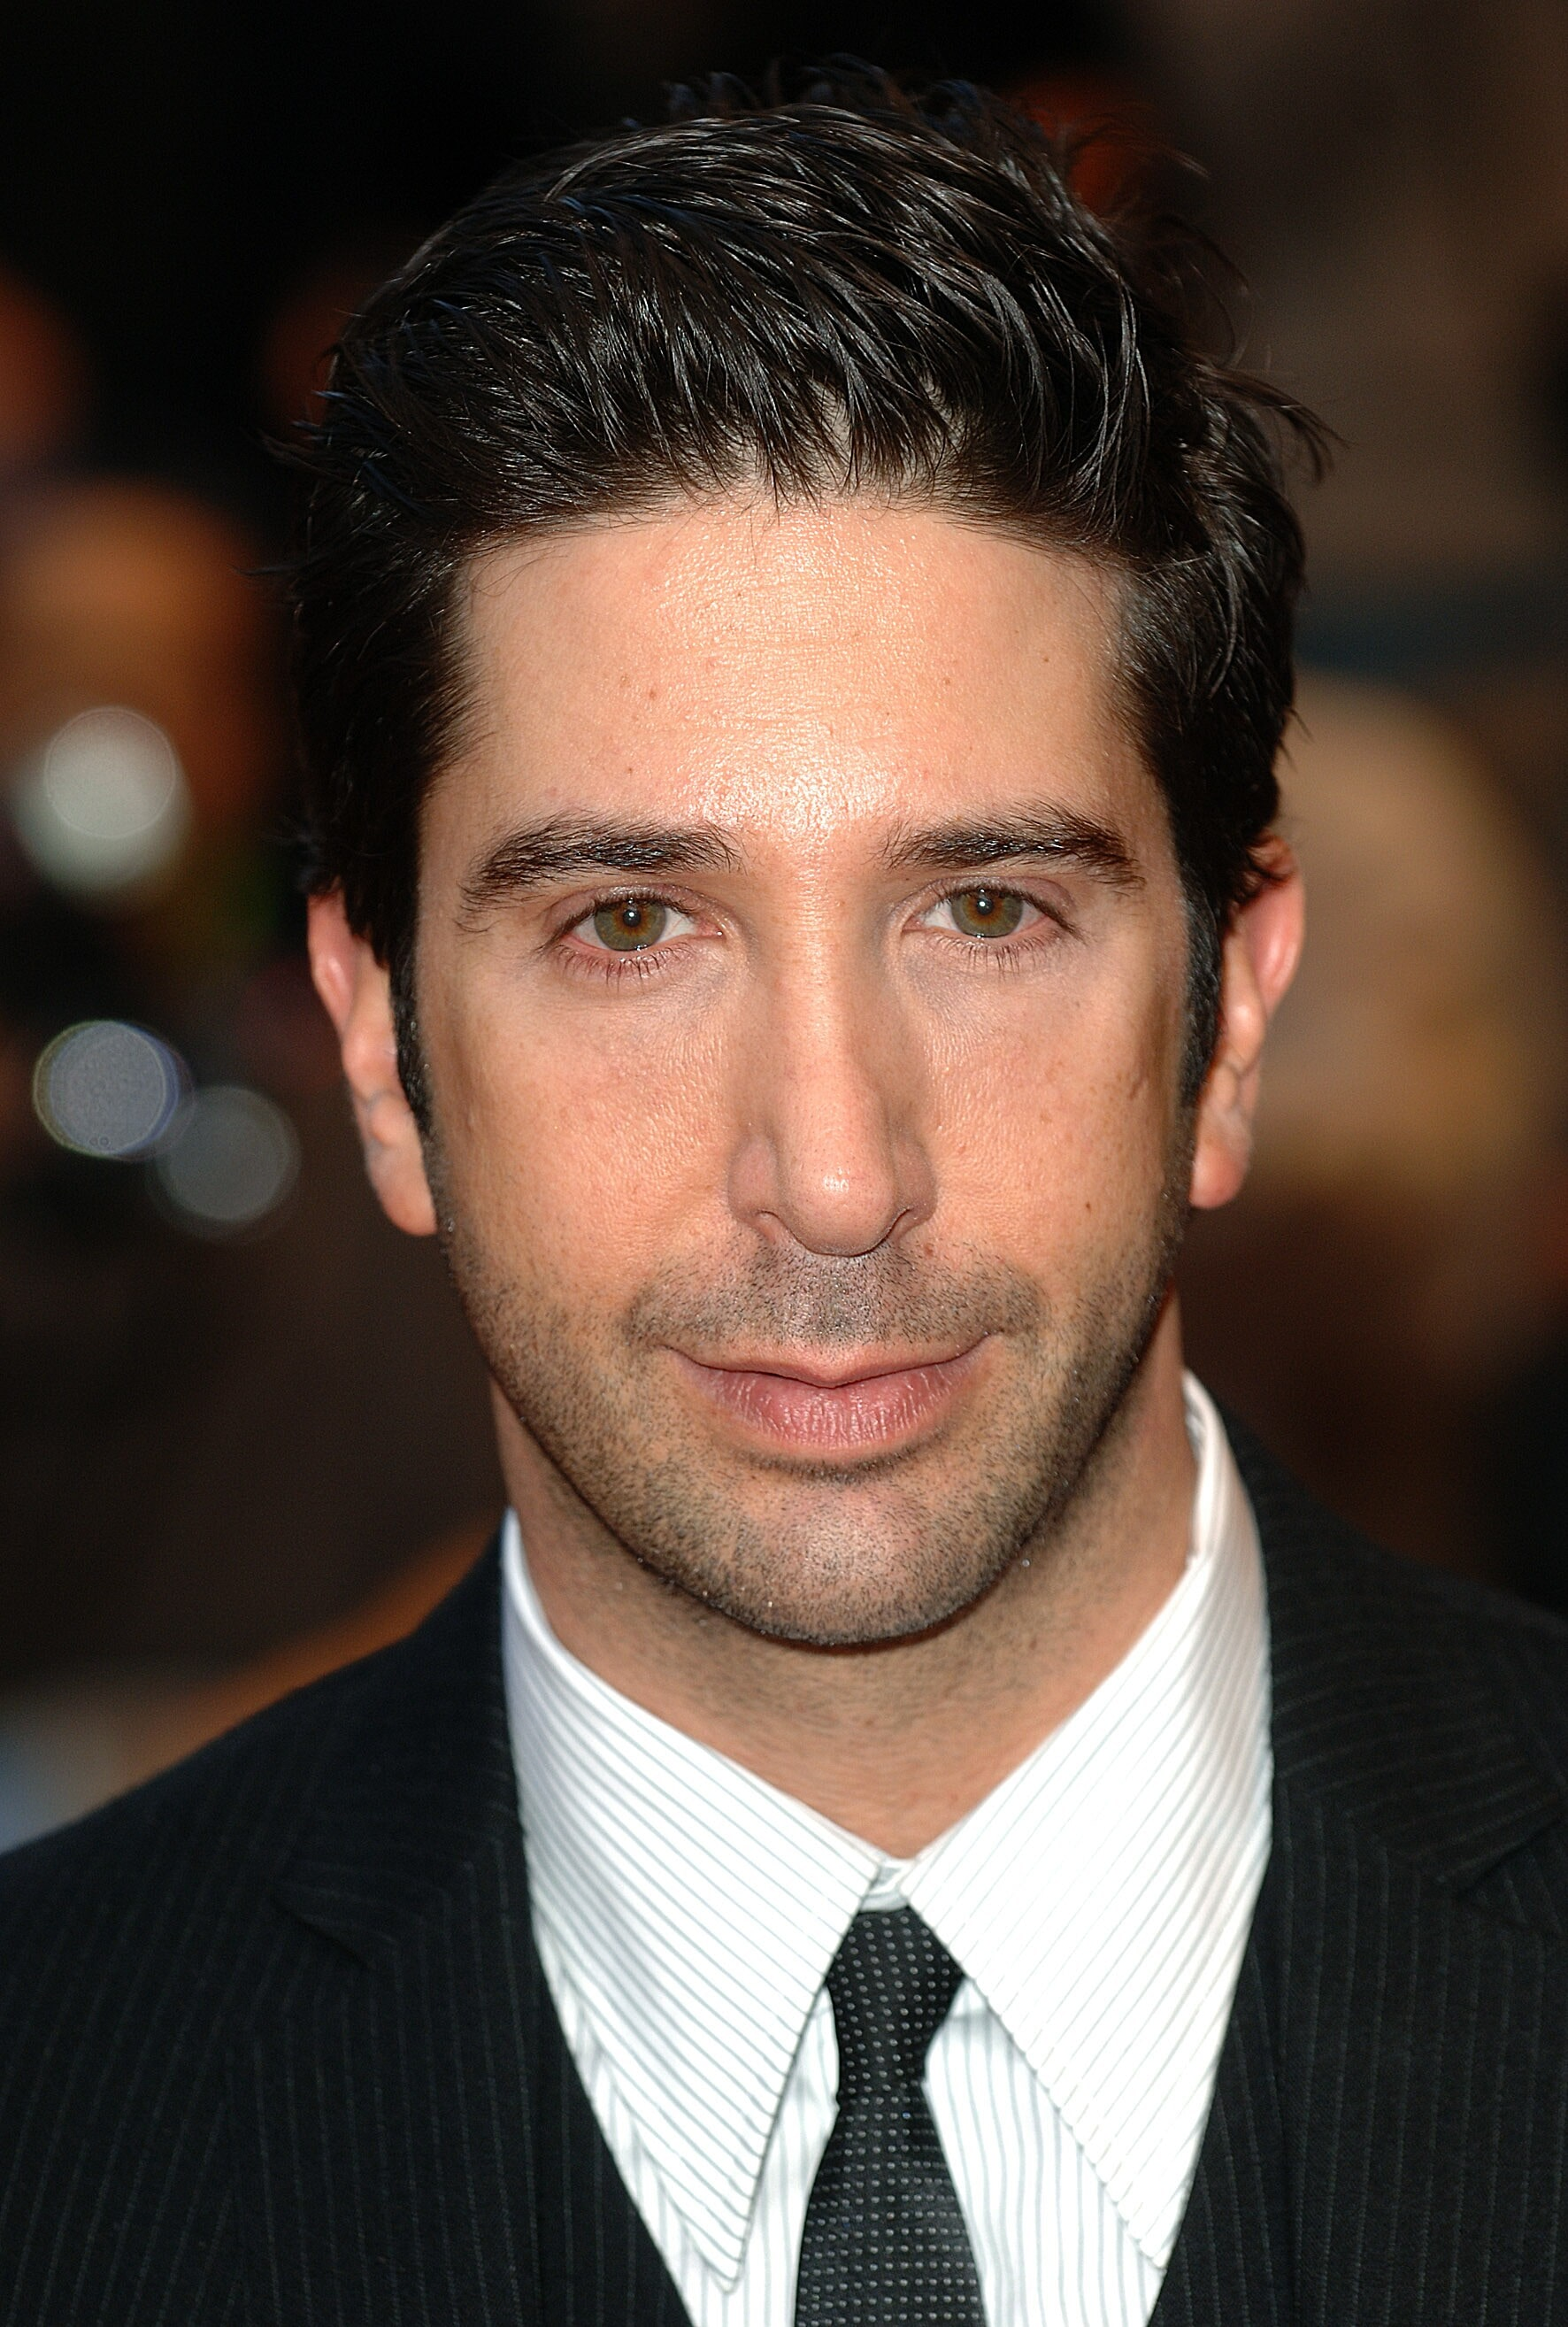 David Schwimmer Desktop wallpapers